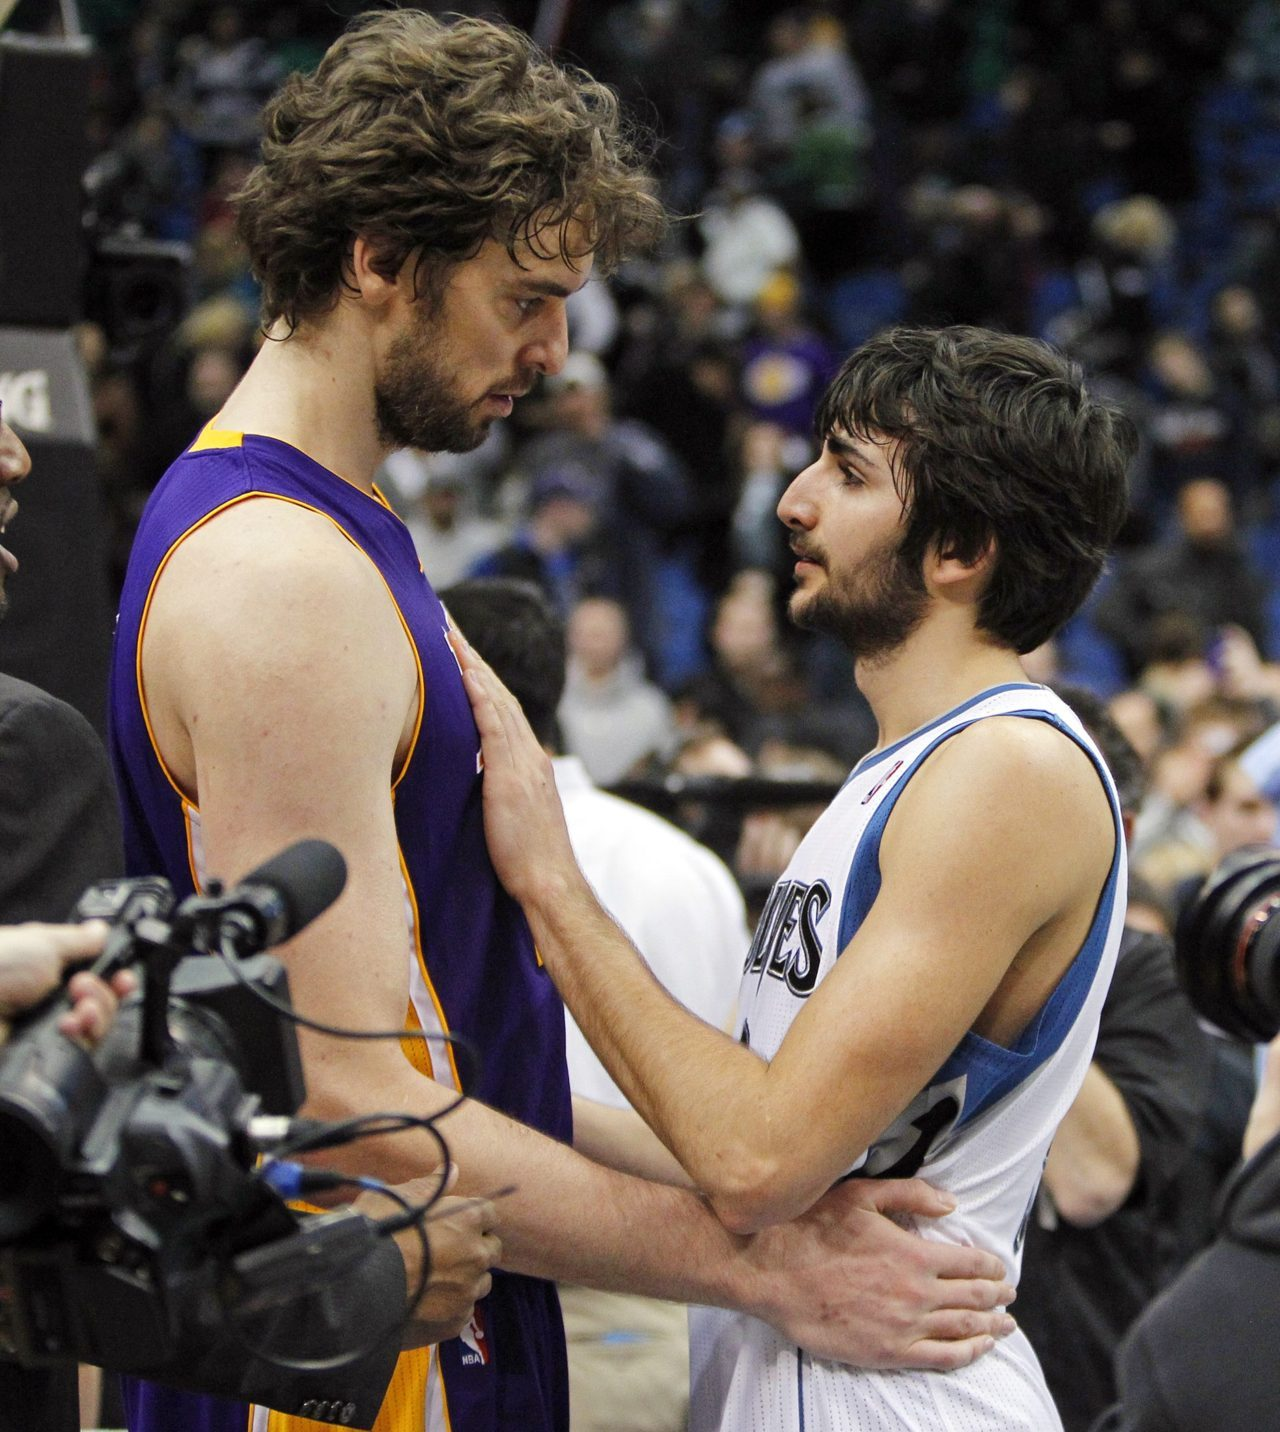 Pau and Ricky Rubio find LOVE in a hopeless place. And it isn't Kevin Love. -Happy Valentine's Day from PASSION of the Pau! [Photo submitted by Paybackisagrandmother]